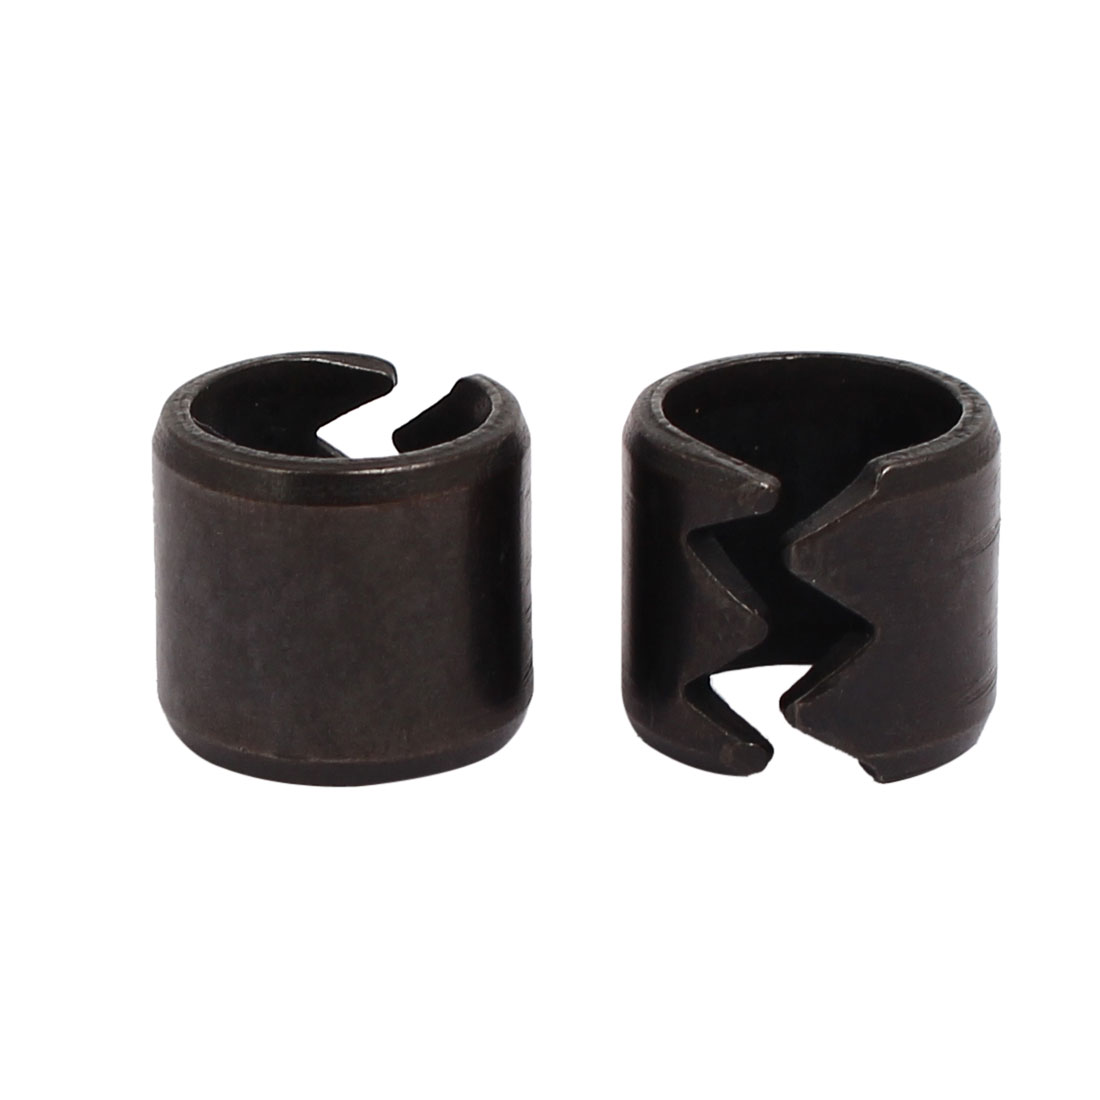 SWA 13mm Carbon Steel Spring Split Dowel Tension Roll Cotter Pin Black 2pcs - image 2 of 2